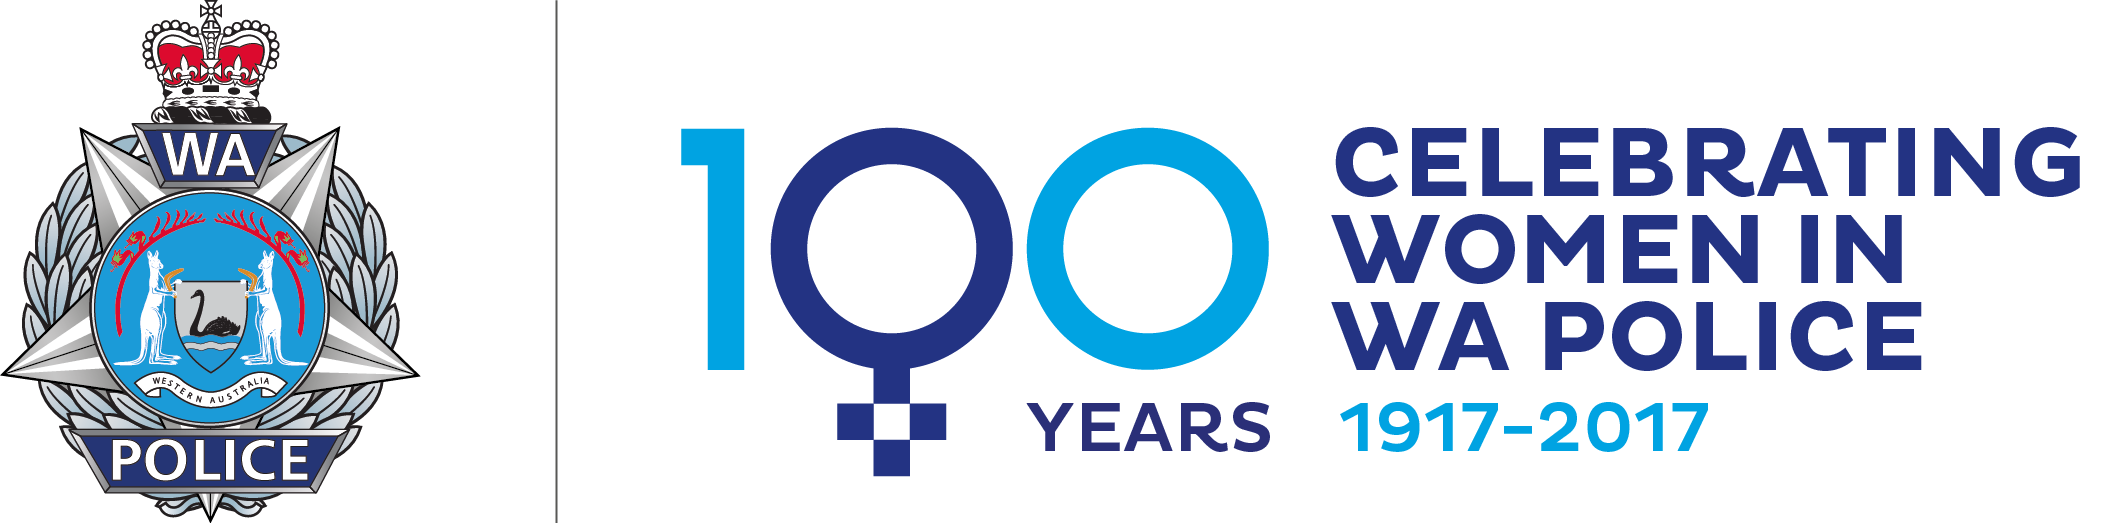 Women In Policing logo